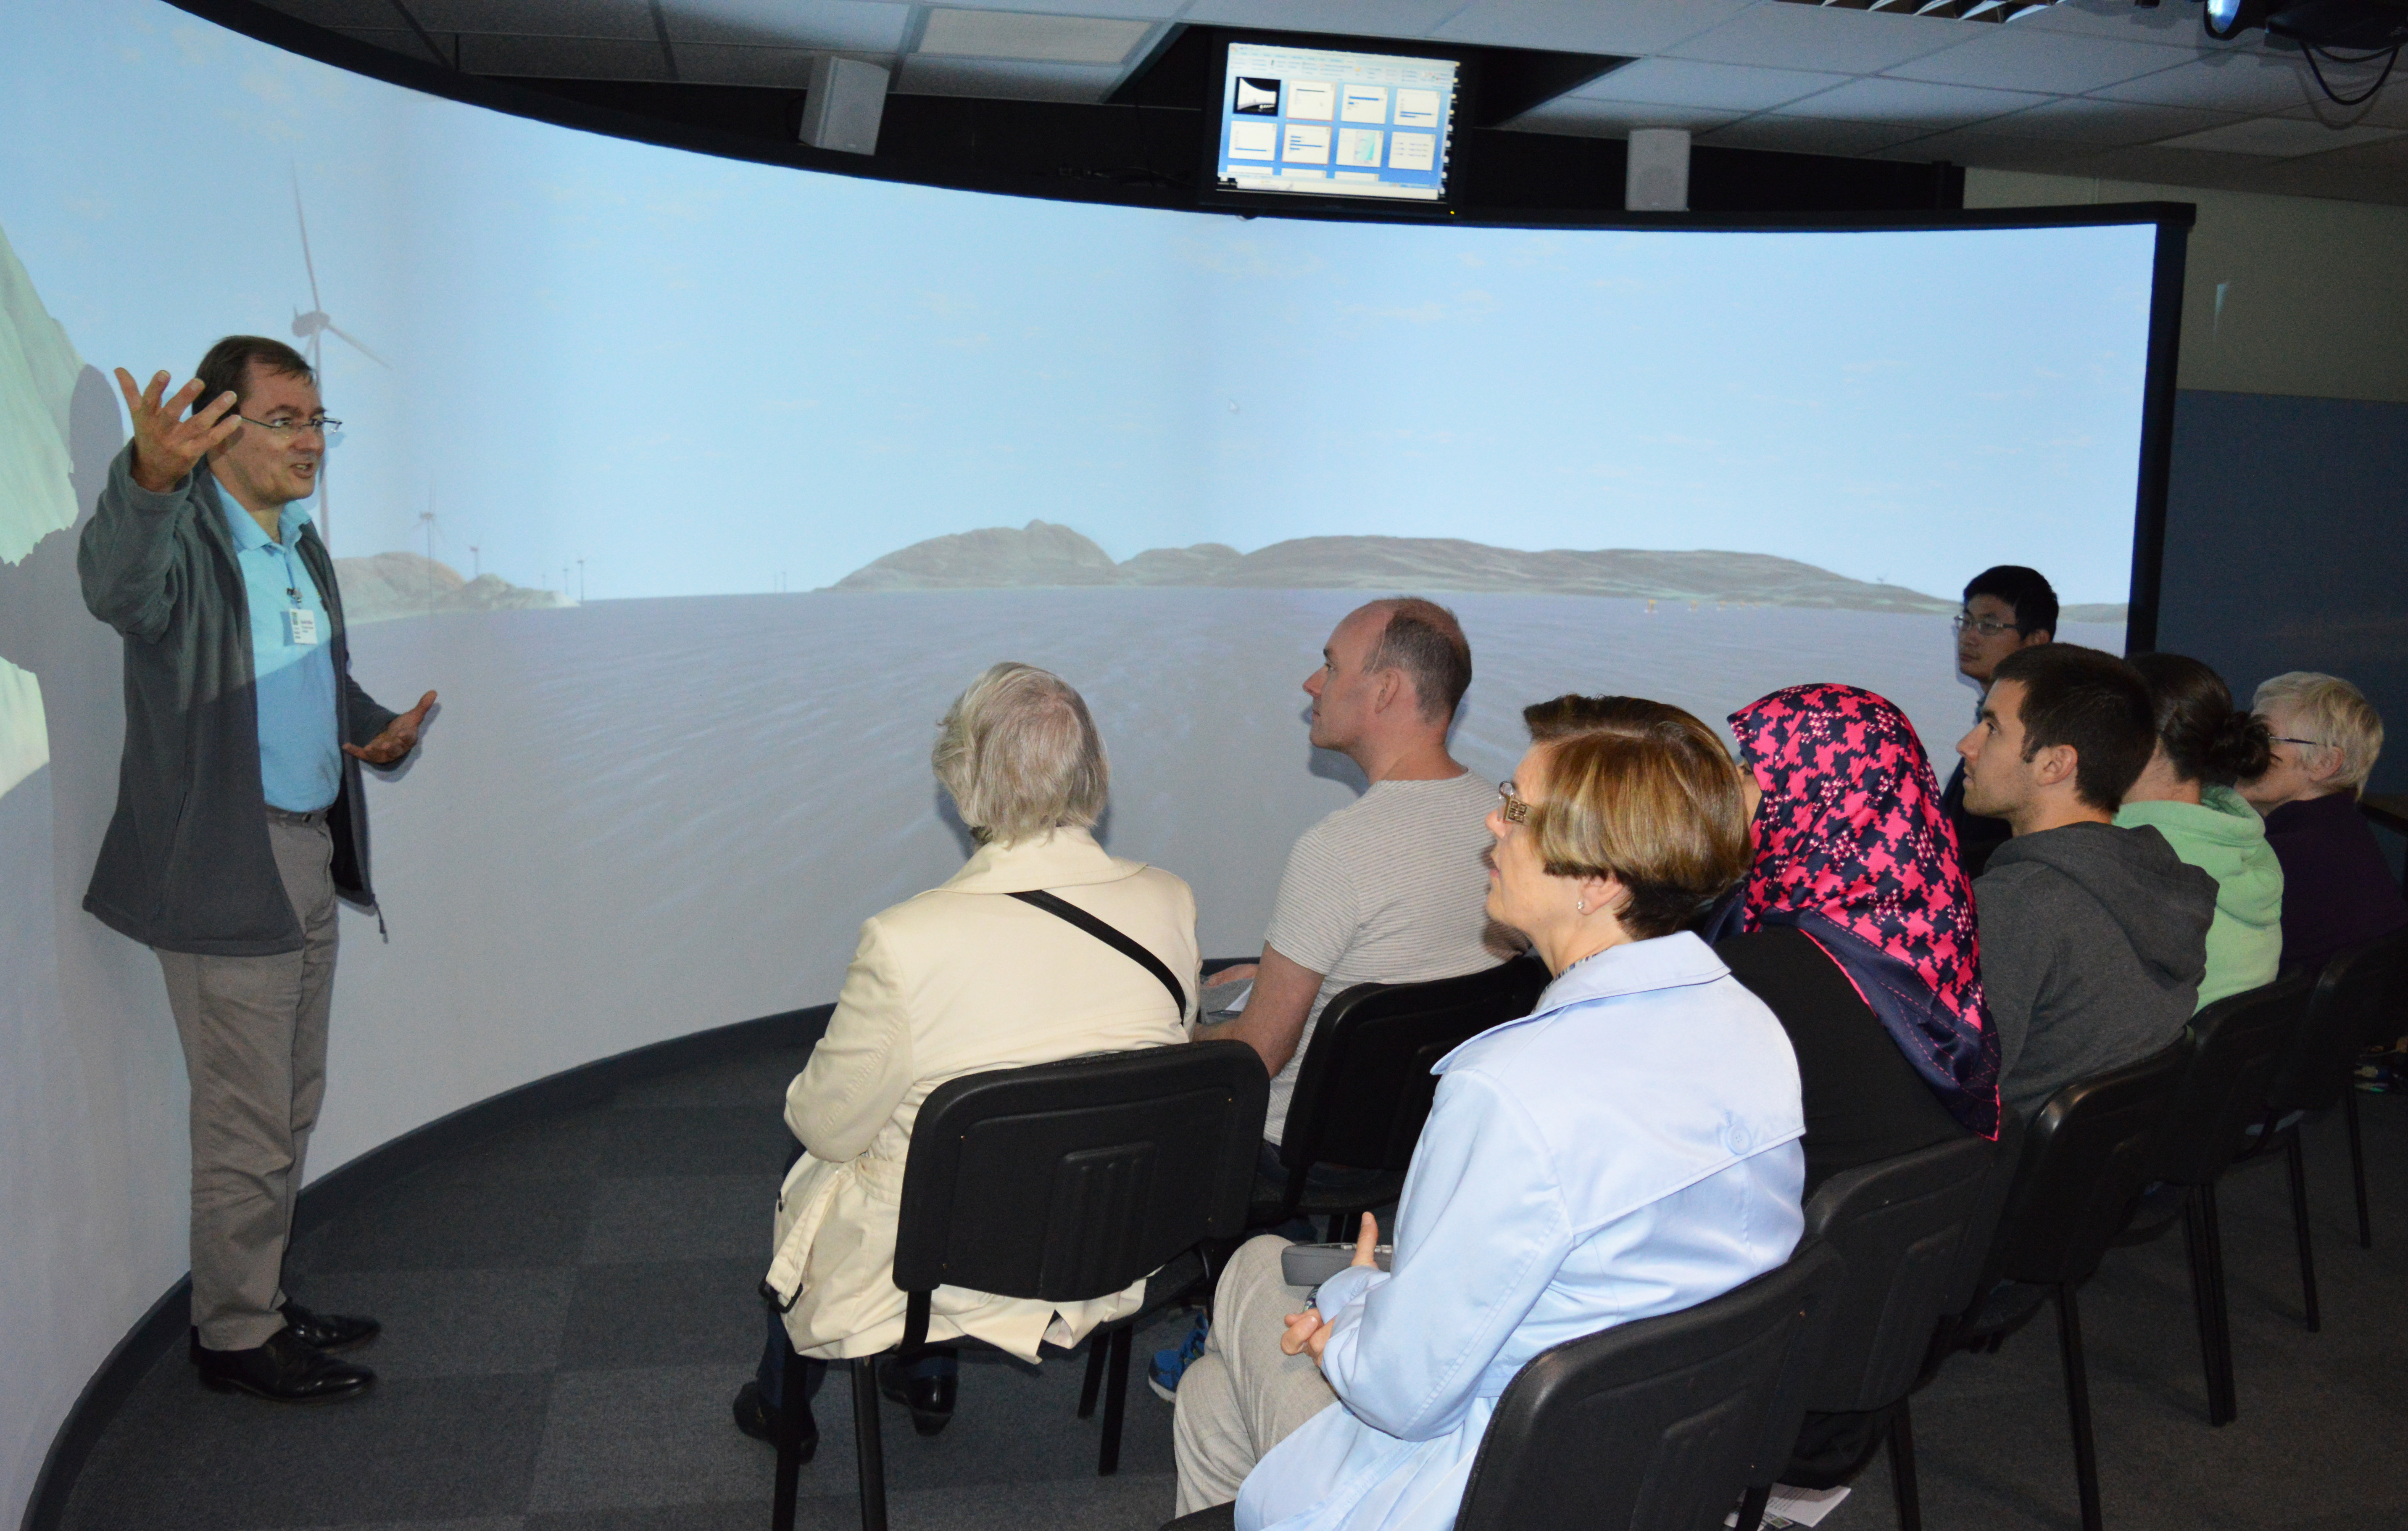 VR suite at JHI